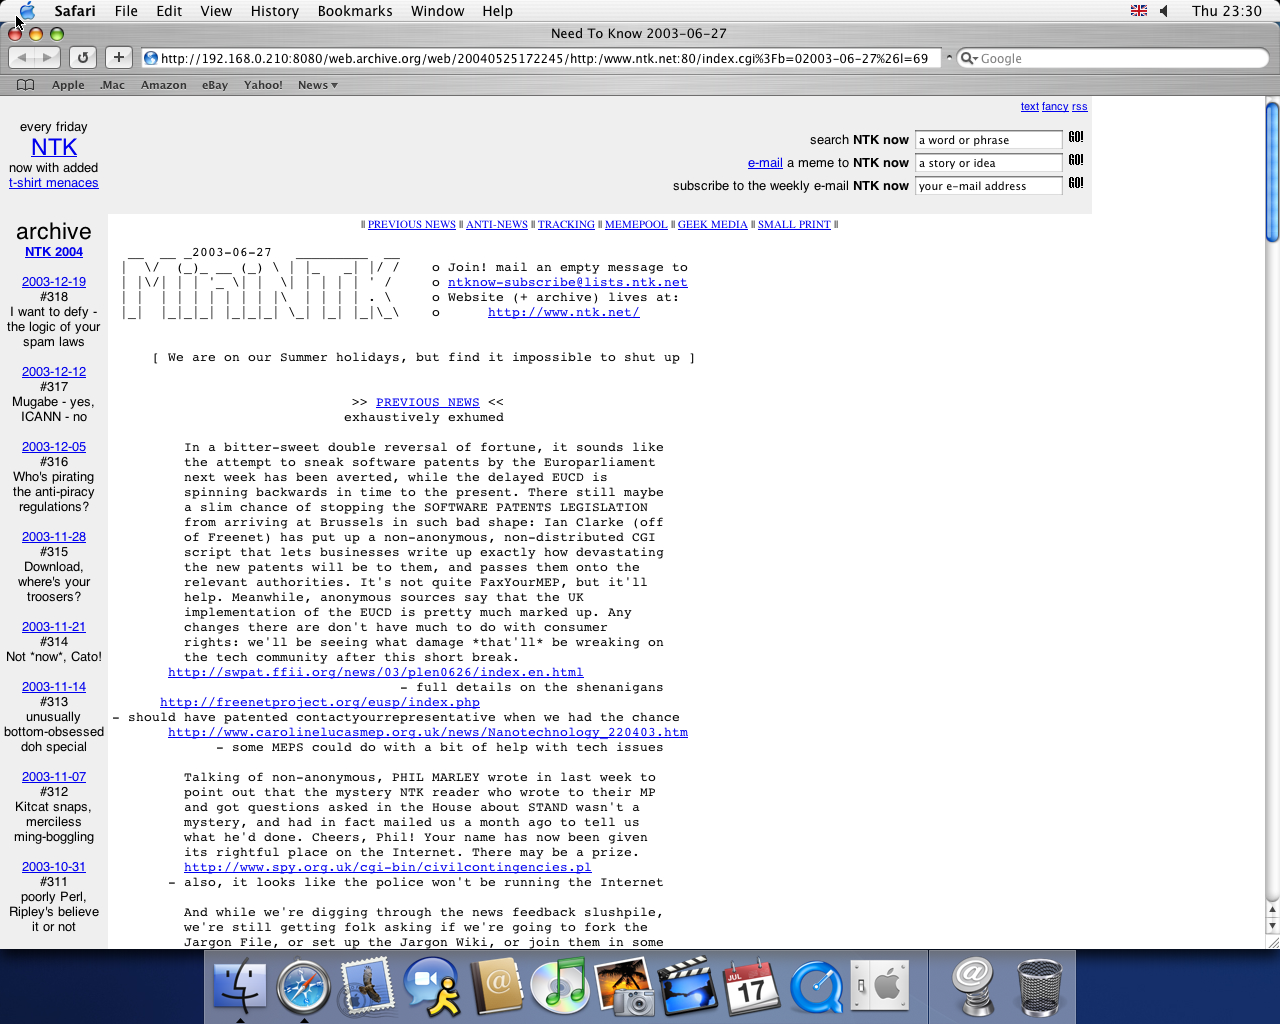 OS X 10.3 PPC with Safari 1.1 displaying a page from NTK archived at May 25, 2004 at 17:22:45